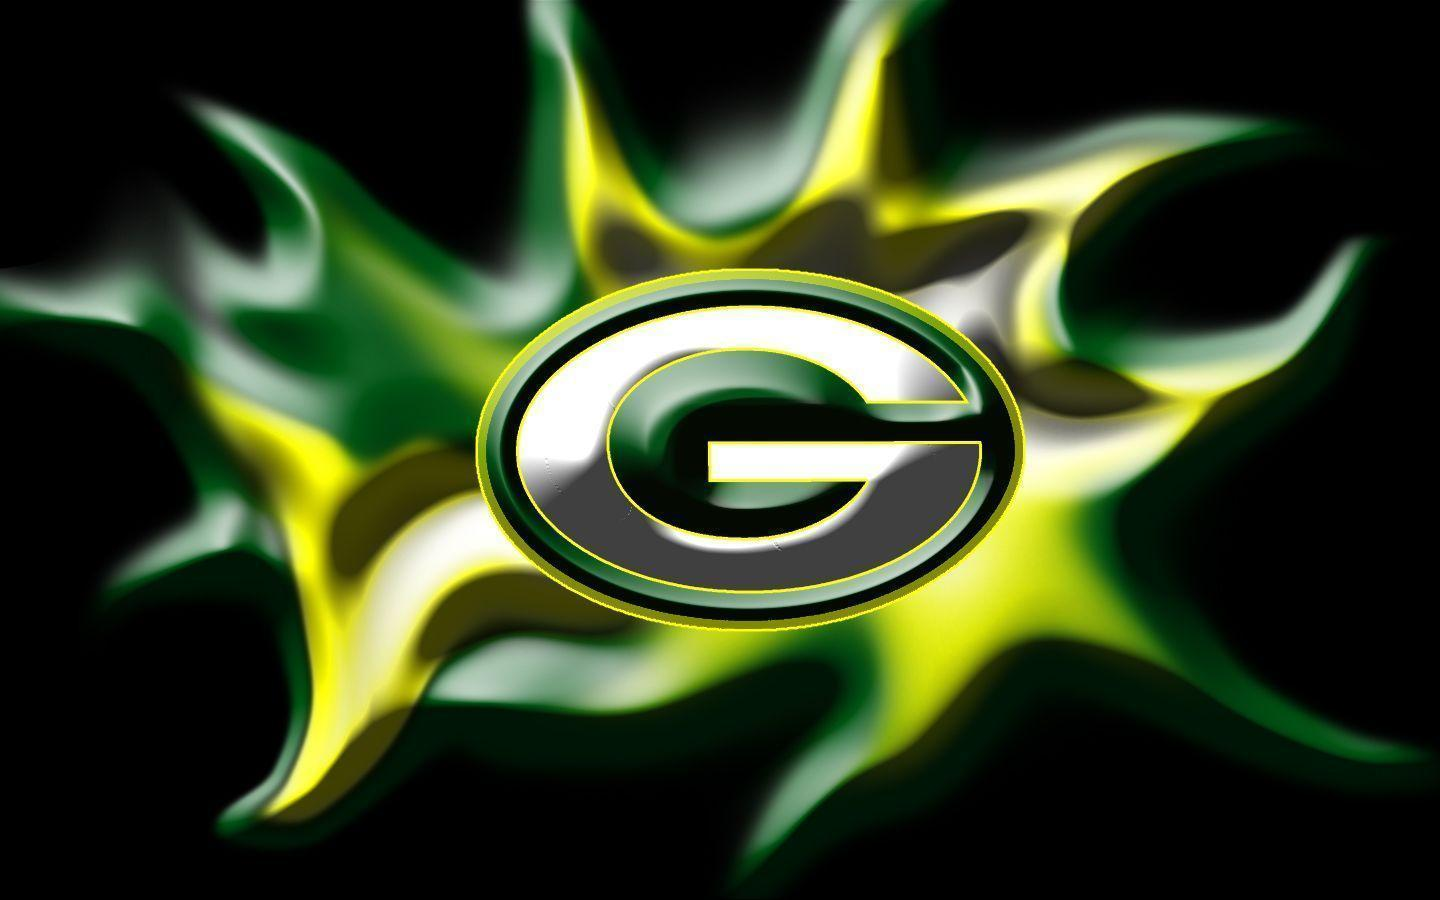 Logos, Awesome and Green bay packers wallpaper on Pinterest